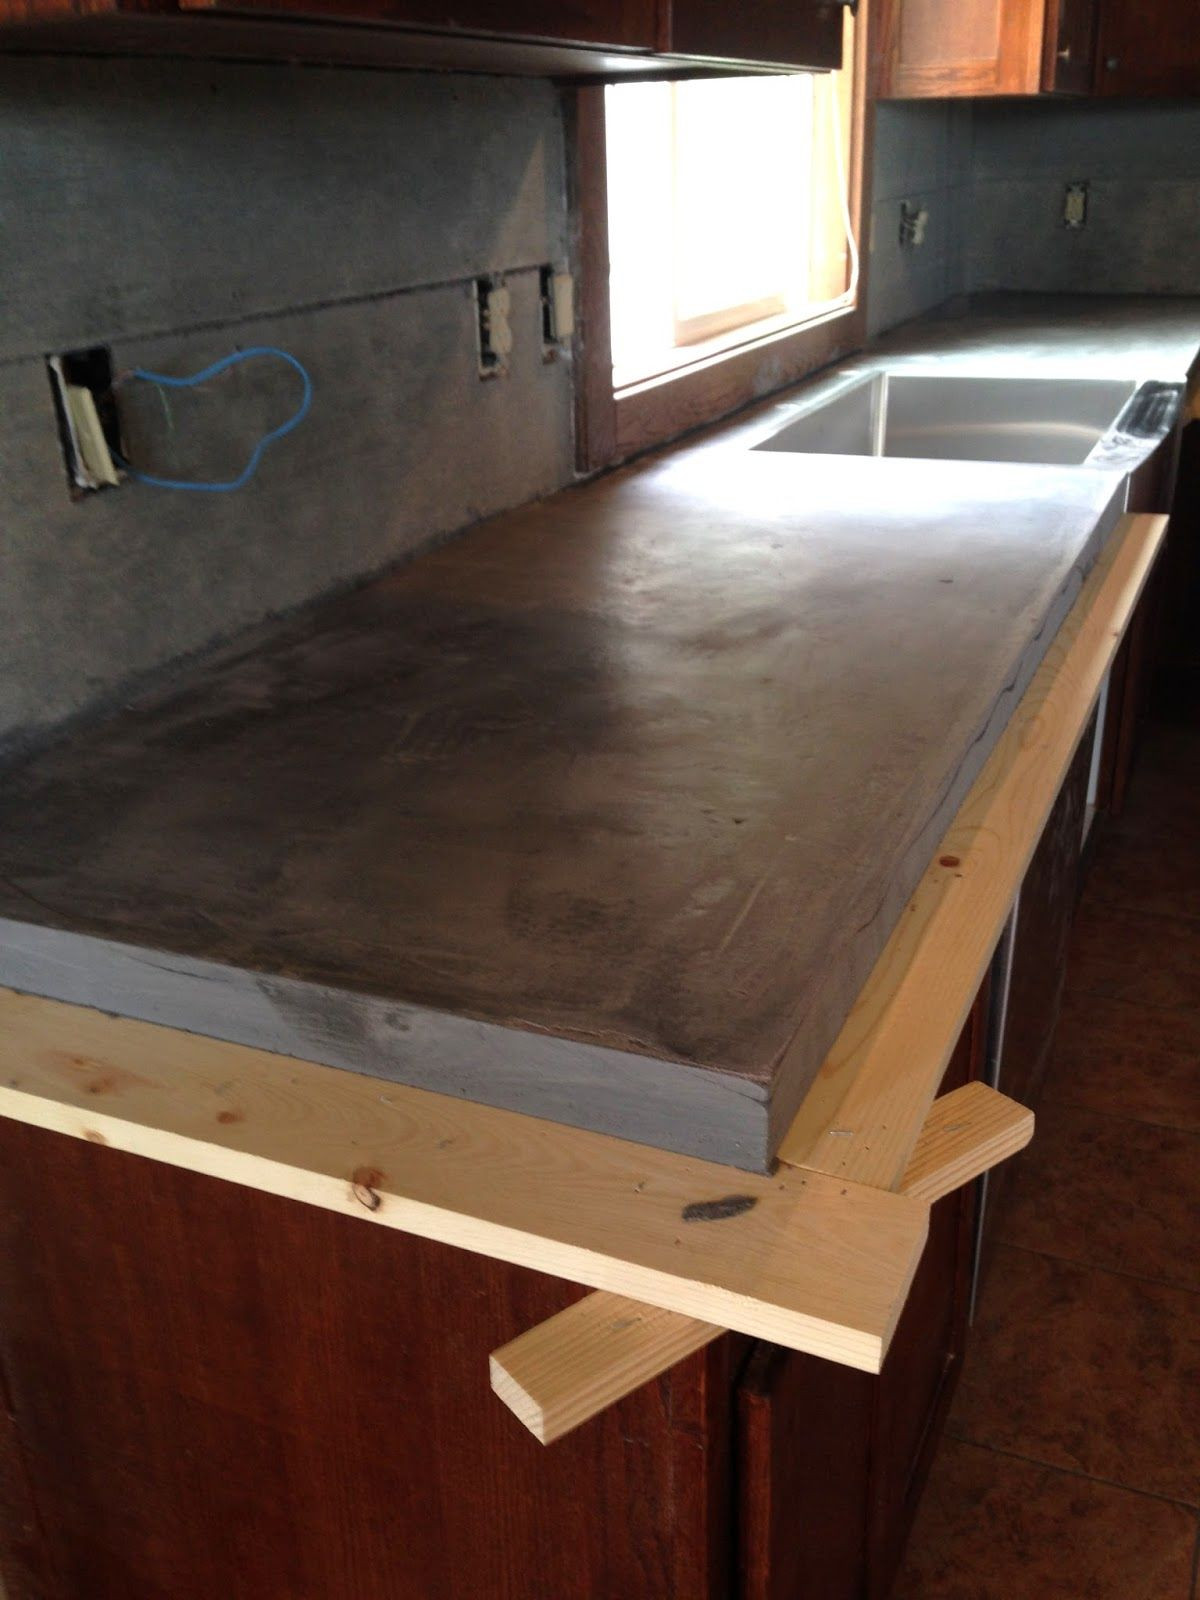 Best ideas about DIY Concrete Countertops Over Laminate . Save or Pin DIY Concrete Counters Poured over Laminate Now.